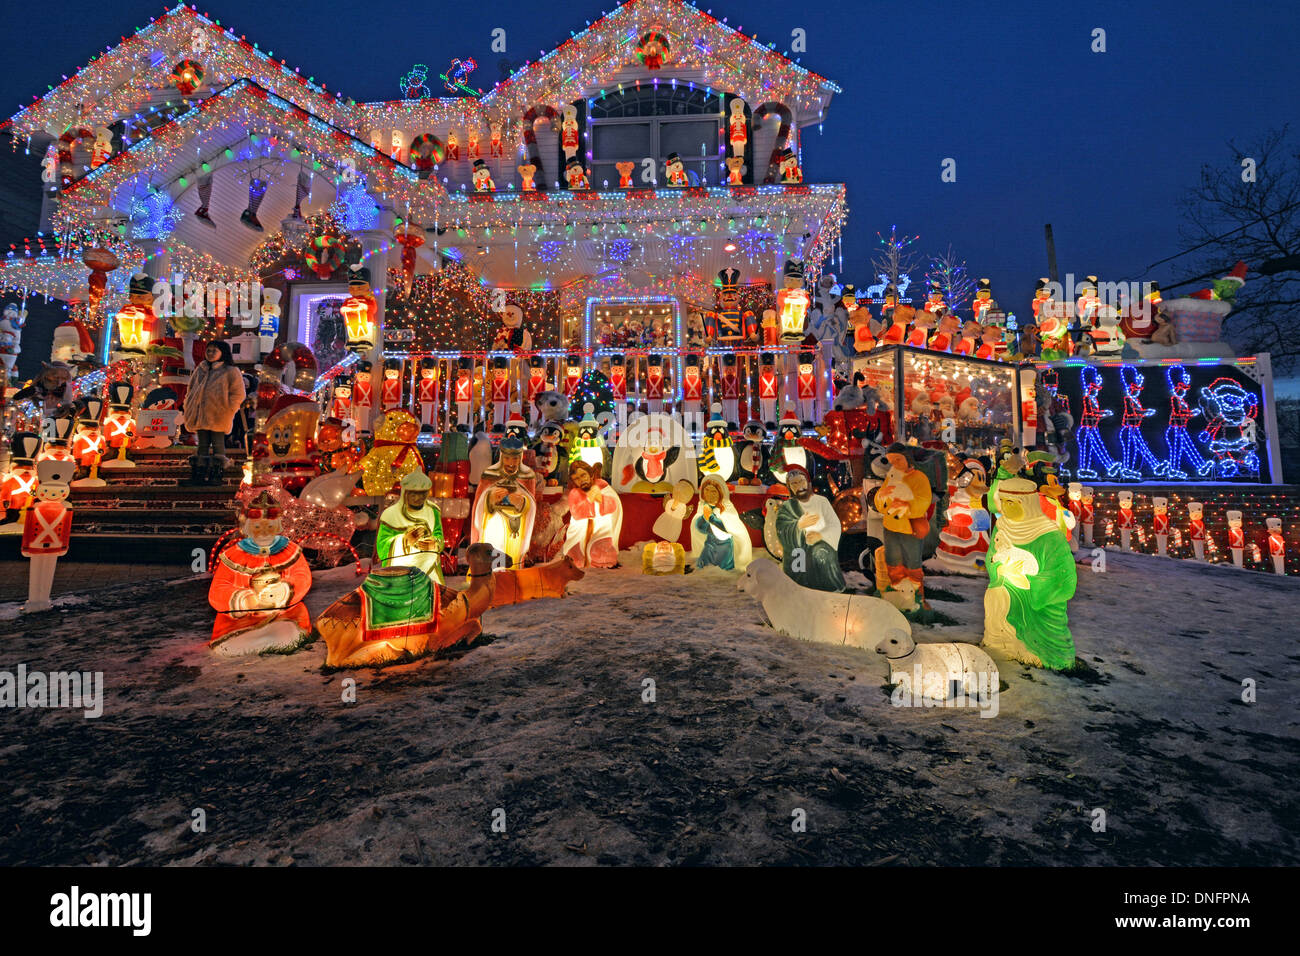 A house in Bayside, Queens, New York with elaborate lighting for Christmas. - Stock Image